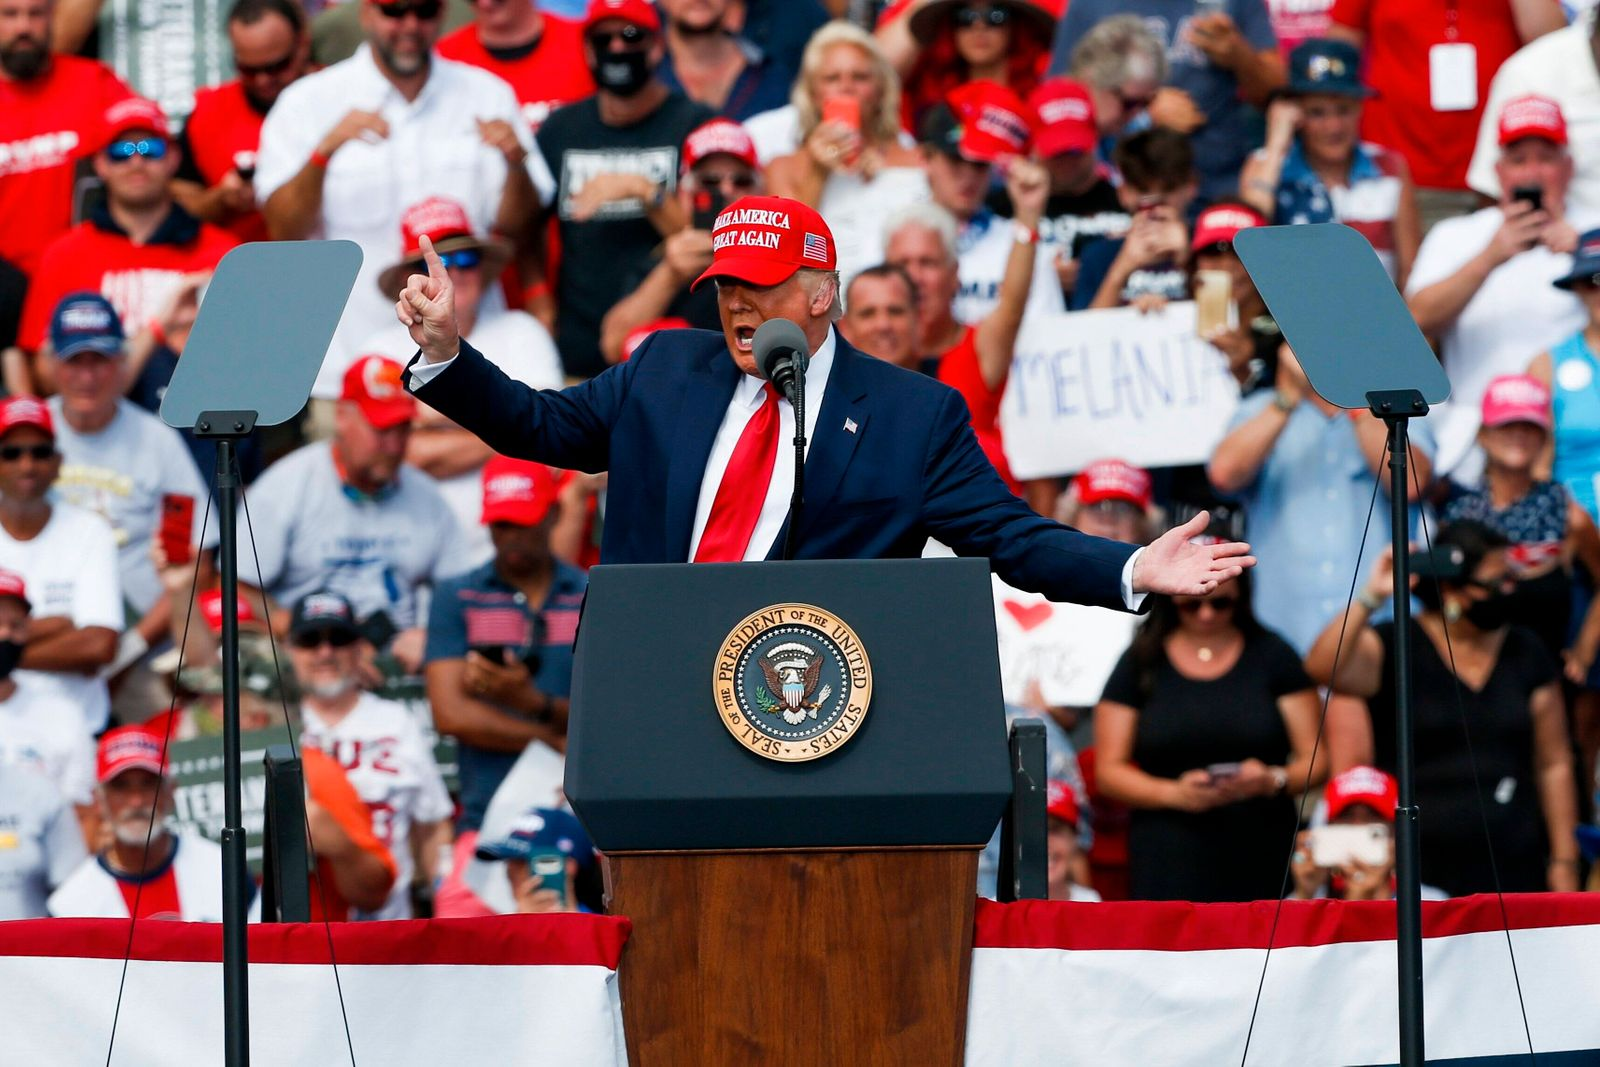 October 29, 2020, Tampa, Florida, USA: President Donald Trump speaks to a crowd at a re-election rally outside Raymond